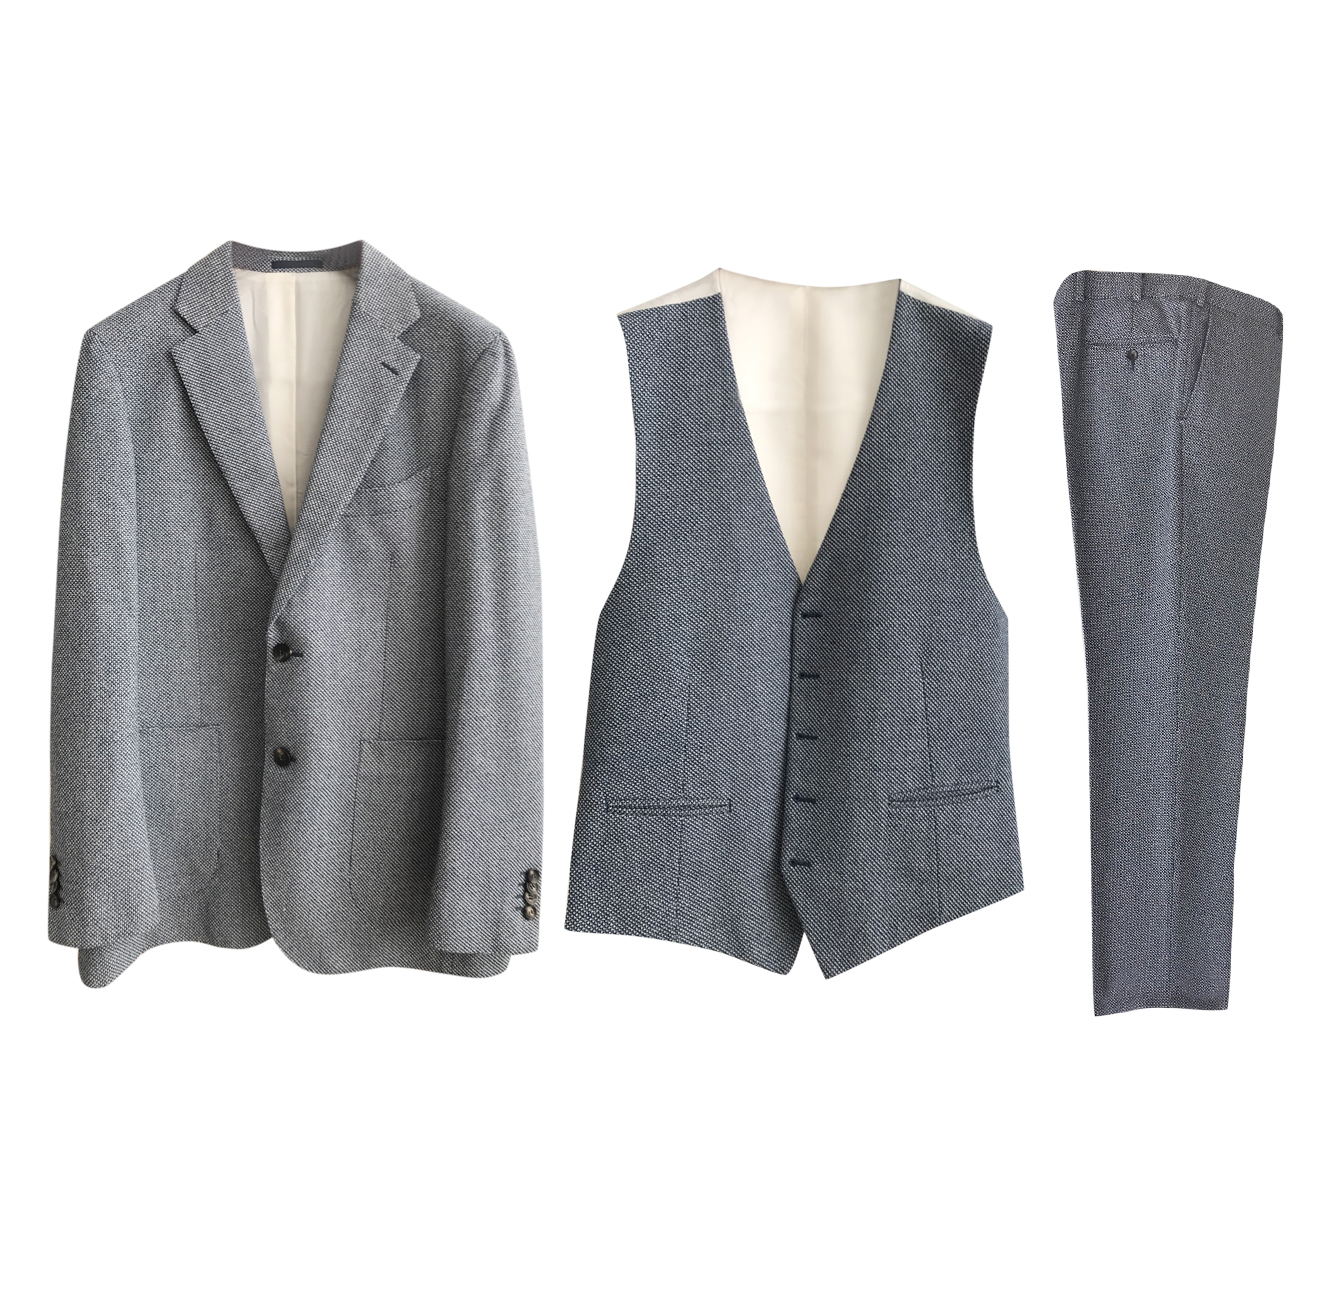 Suitsupply Grey Three-Piece Suit